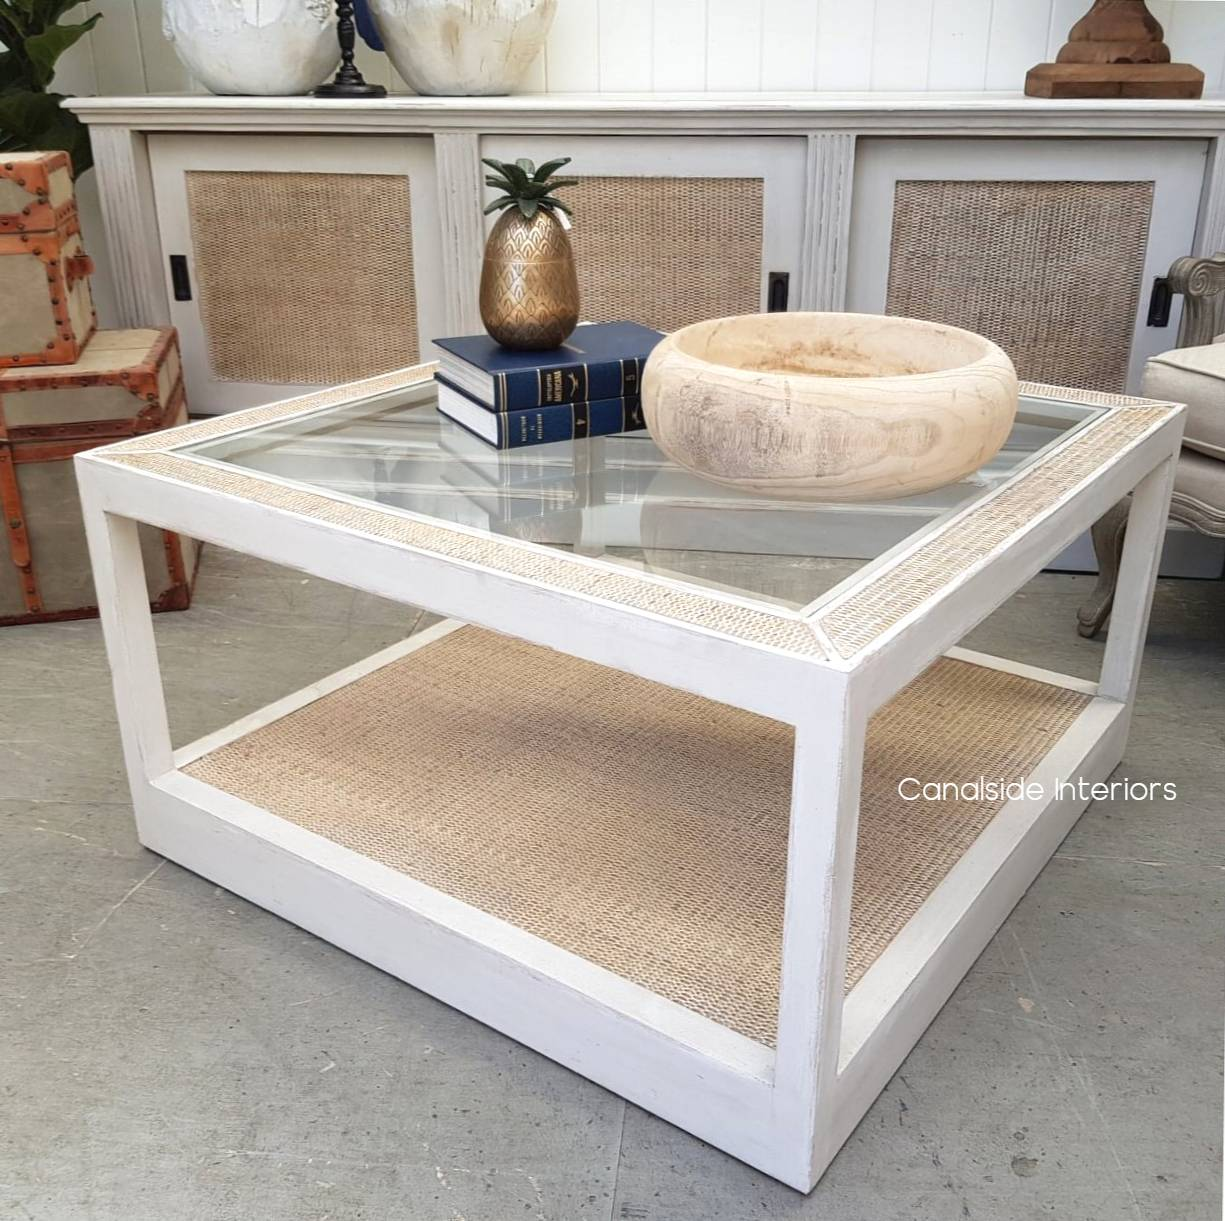 Brielle Rattan Coffee Table  TABLES, HAMPTONS Style, PLANTATION Style, TABLES Coffee Tables, LIVING Room, LIVING Coffee & Side Tables, PLANTATION STYLE